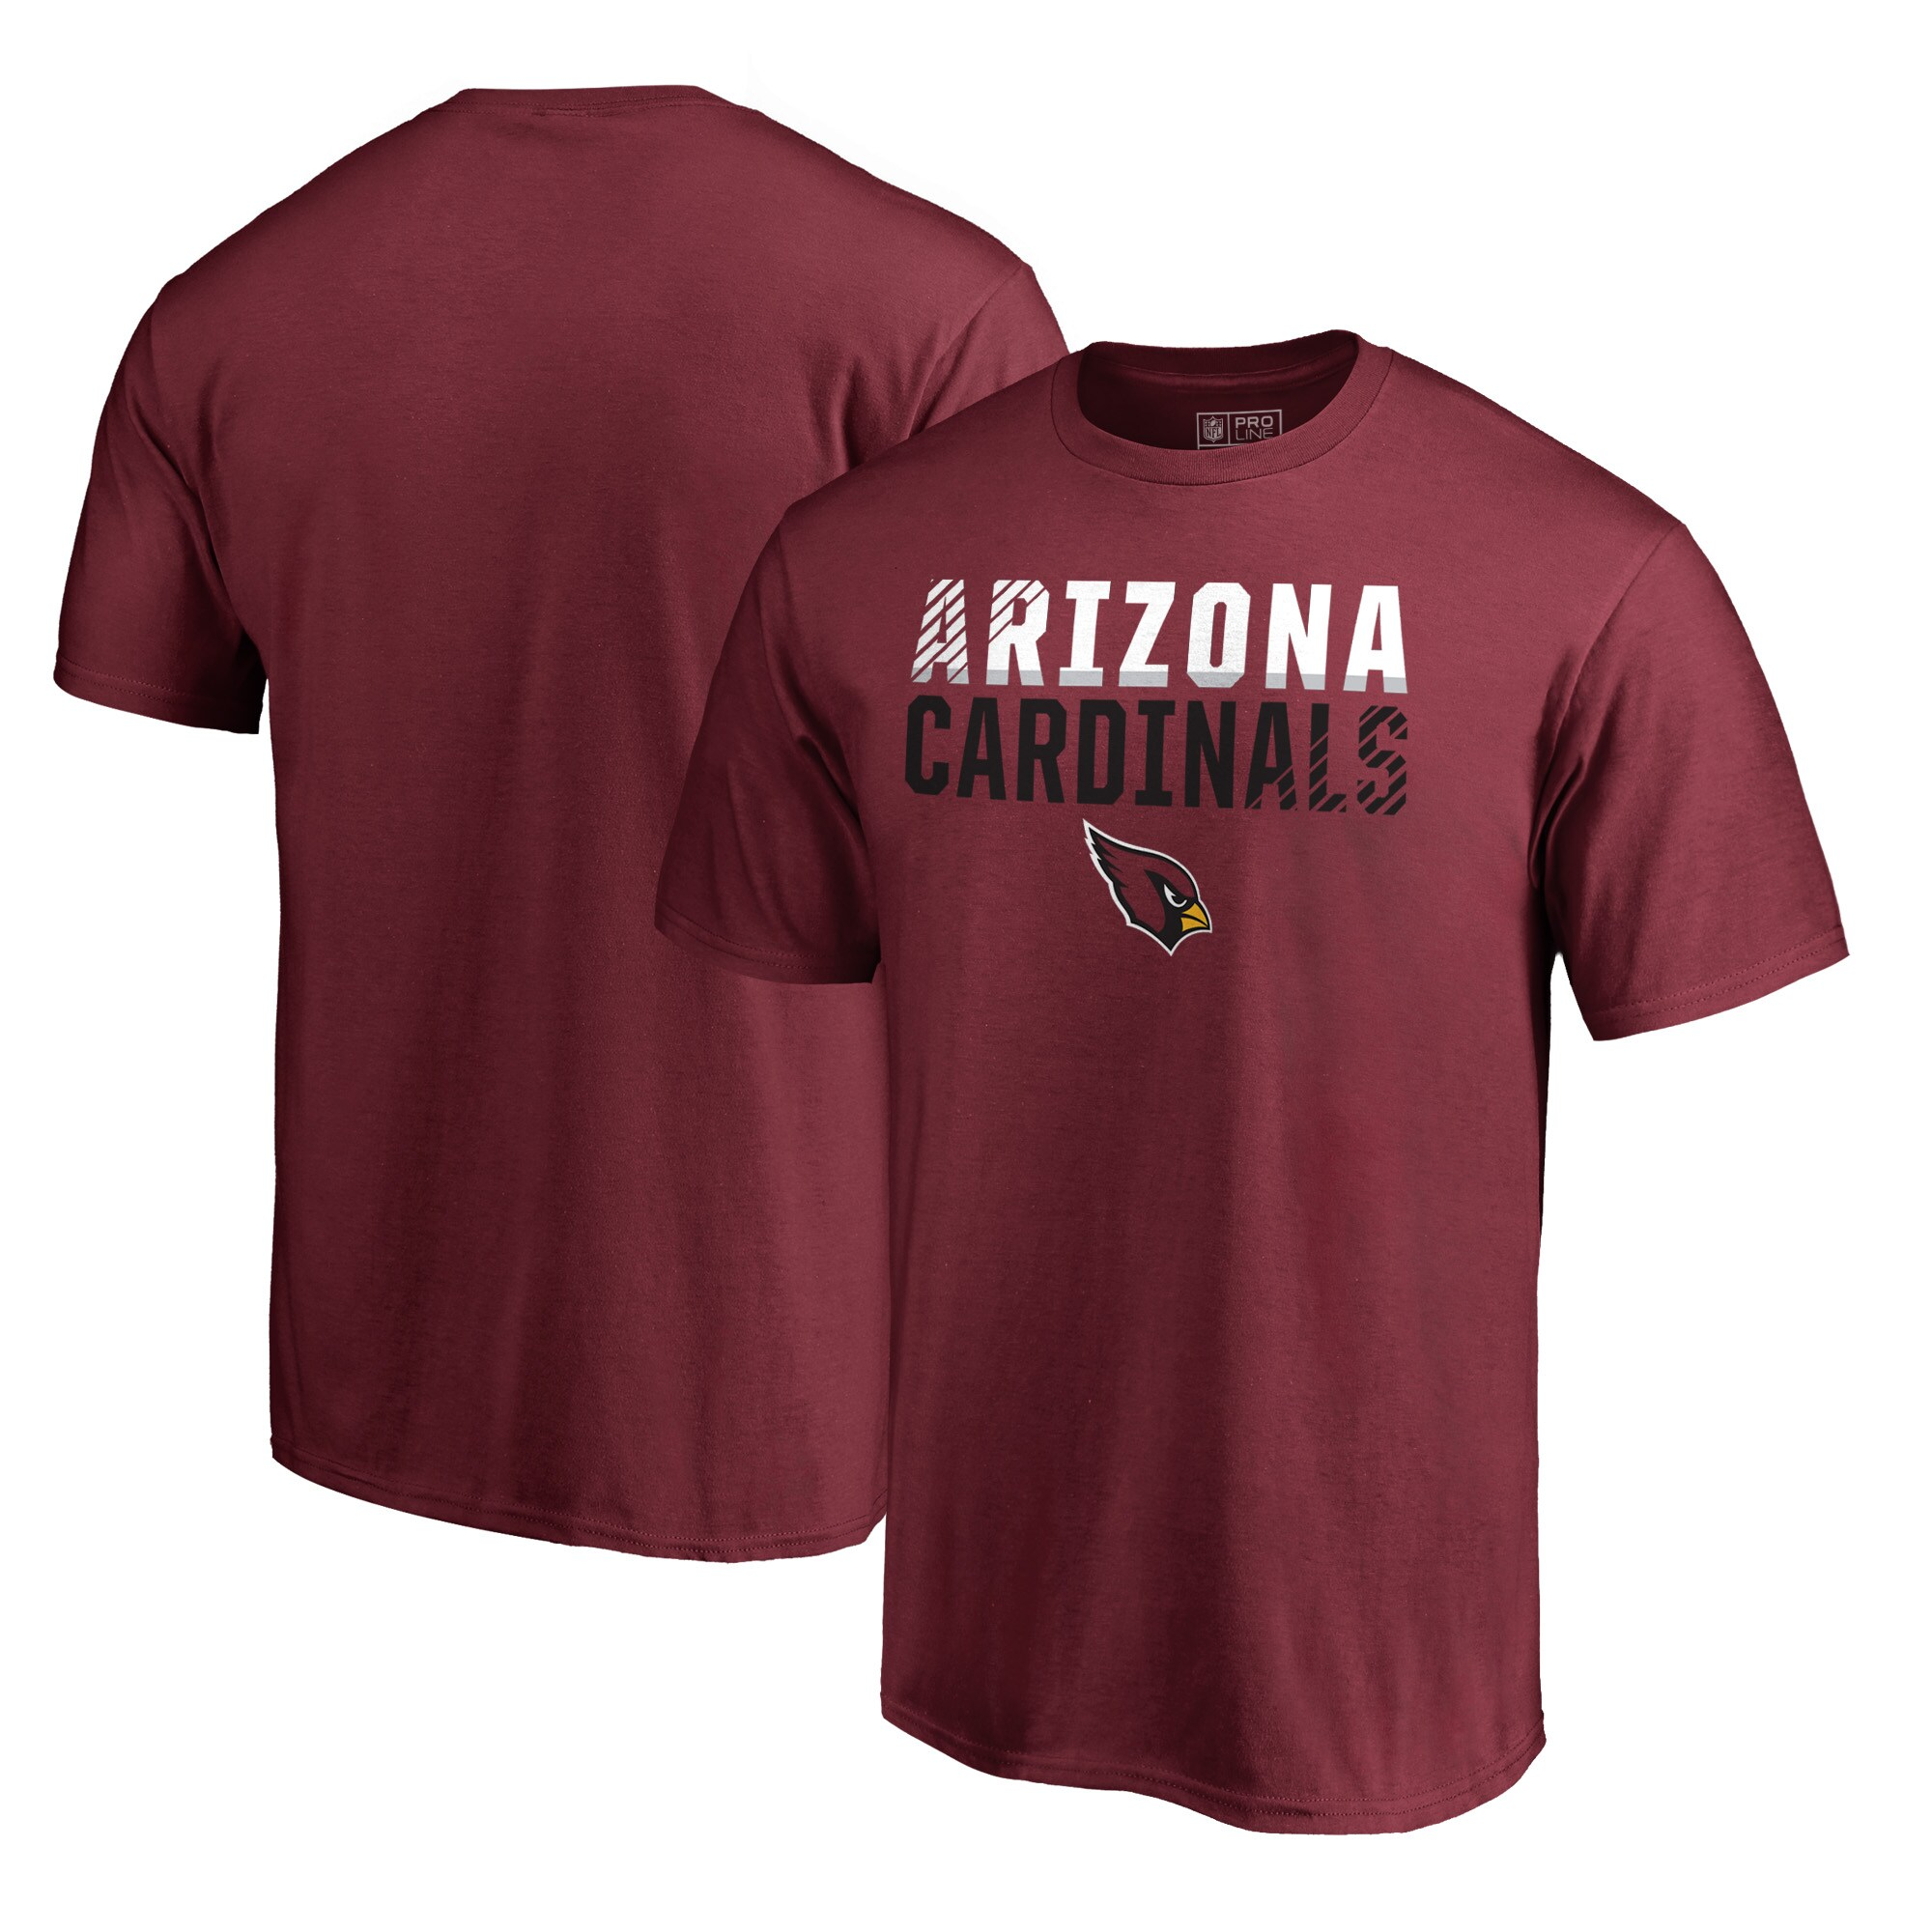 Arizona Cardinals NFL Pro Line by Fanatics Branded Iconic Collection Fade Out T-Shirt - Cardinal